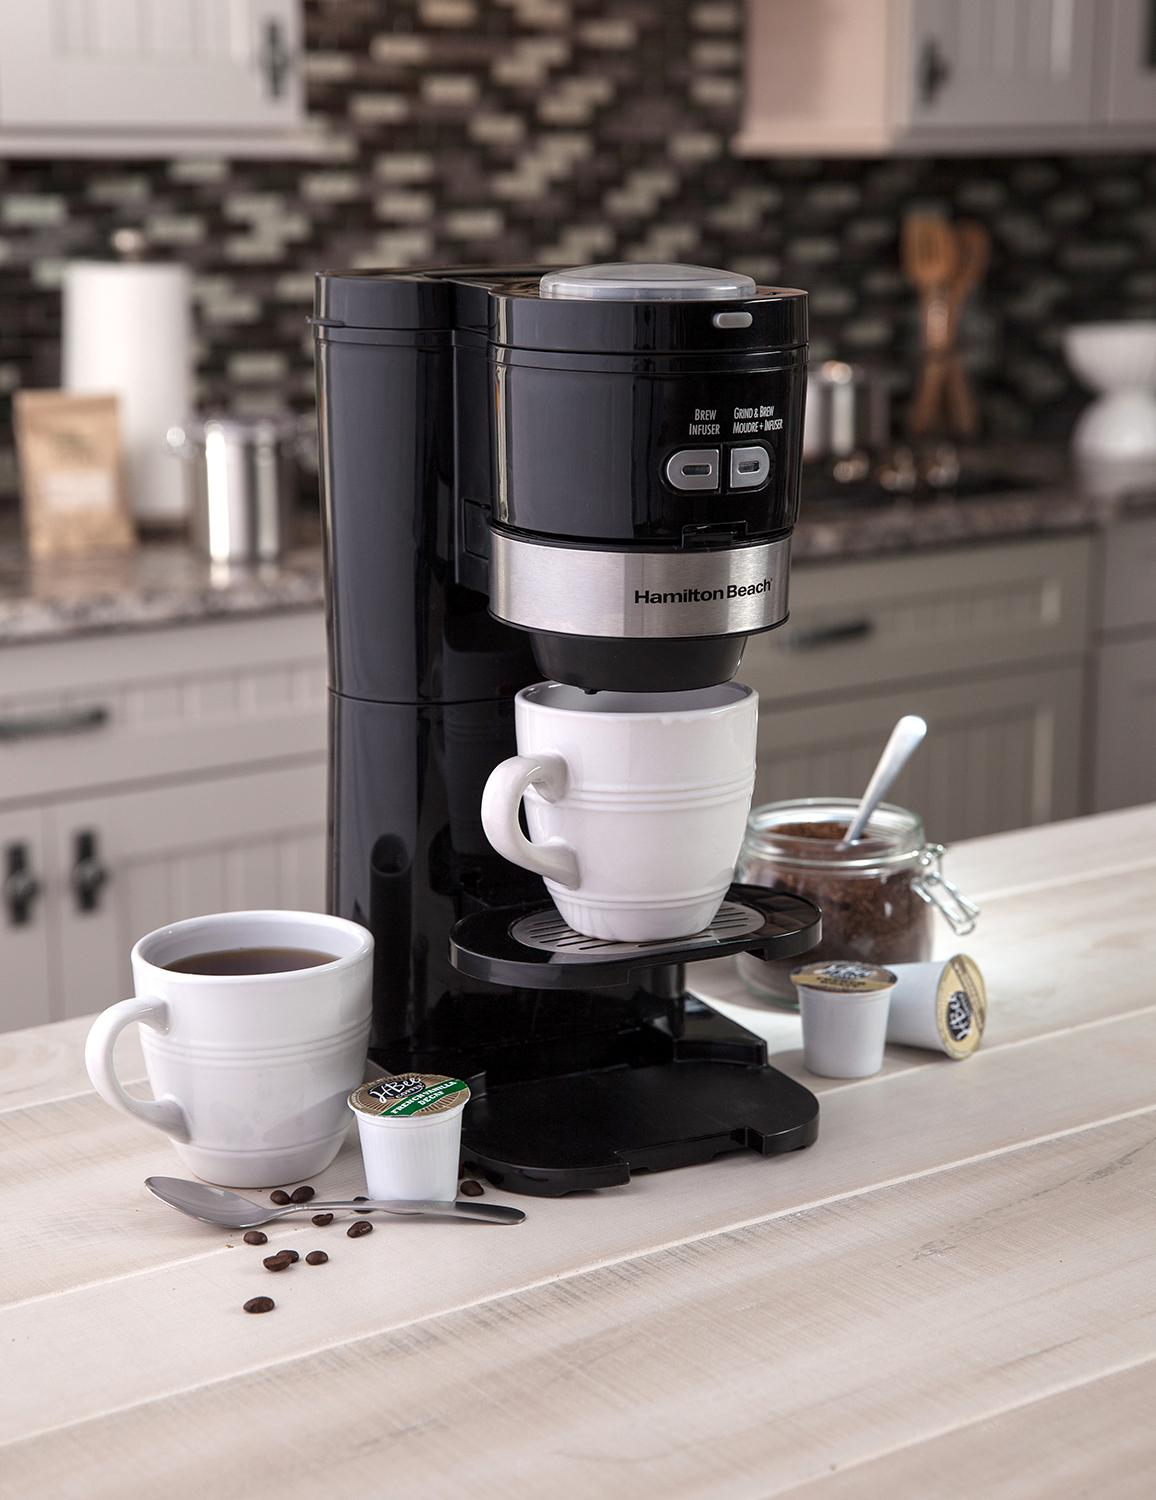 Hamilton Beach Coffee Maker Grind And Brew